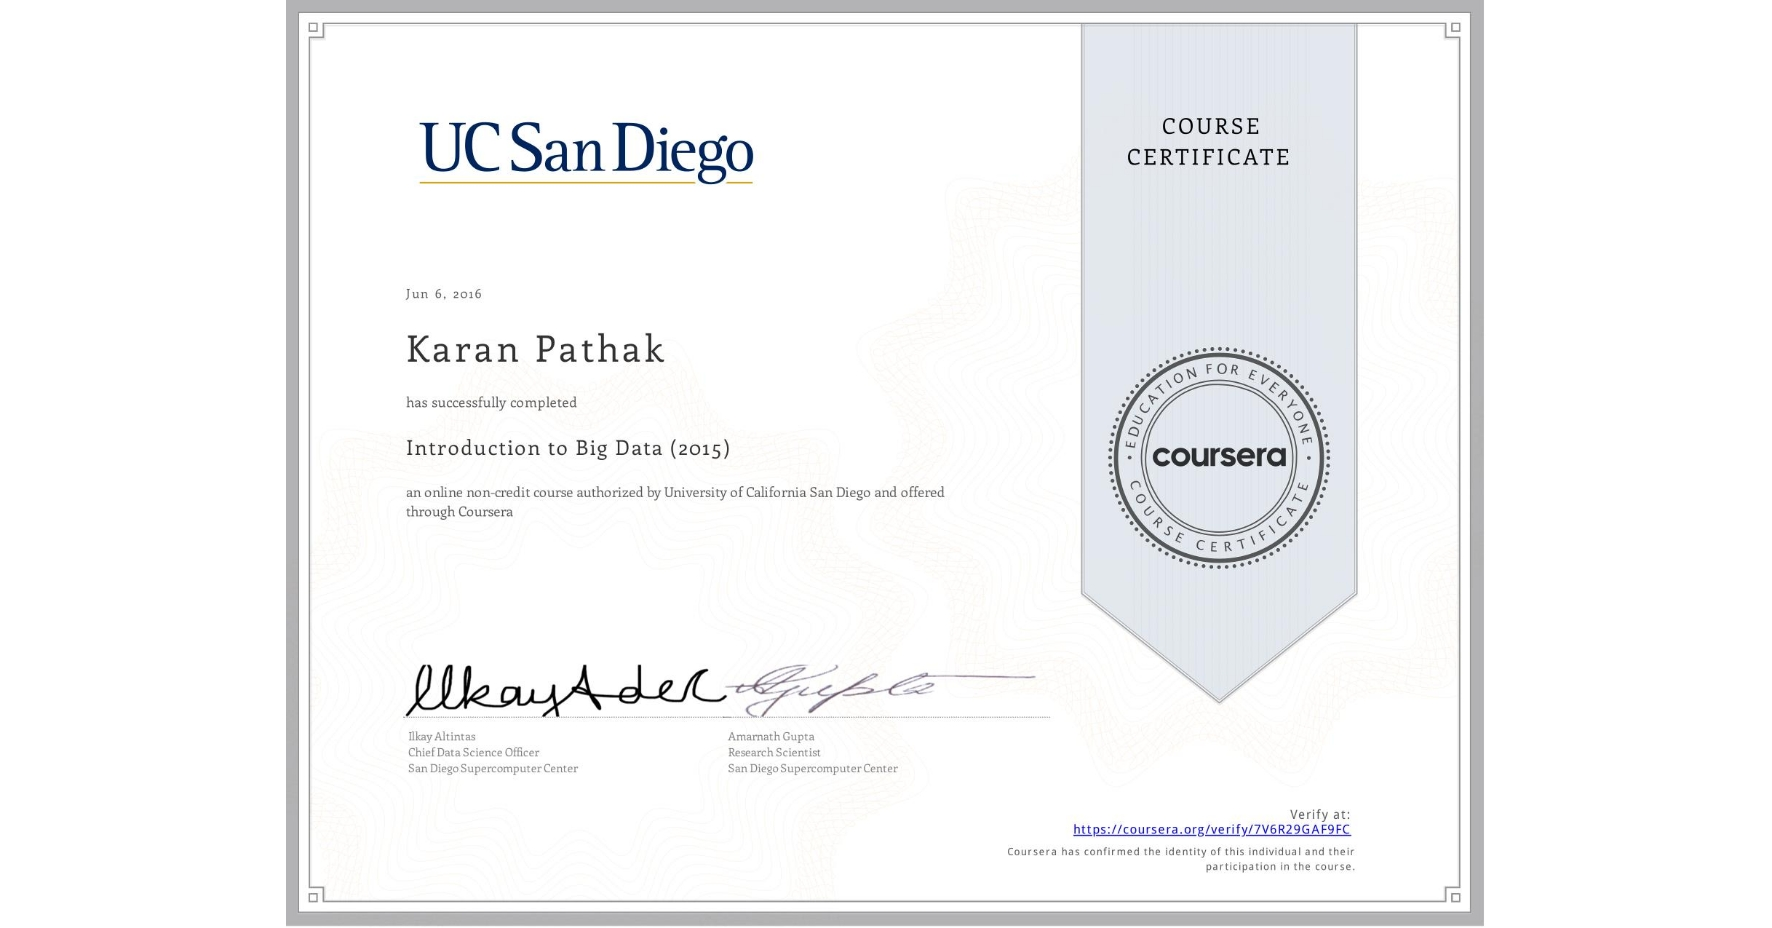 View certificate for Karan Pathak, Introduction to Big Data (2015), an online non-credit course authorized by University of California San Diego and offered through Coursera